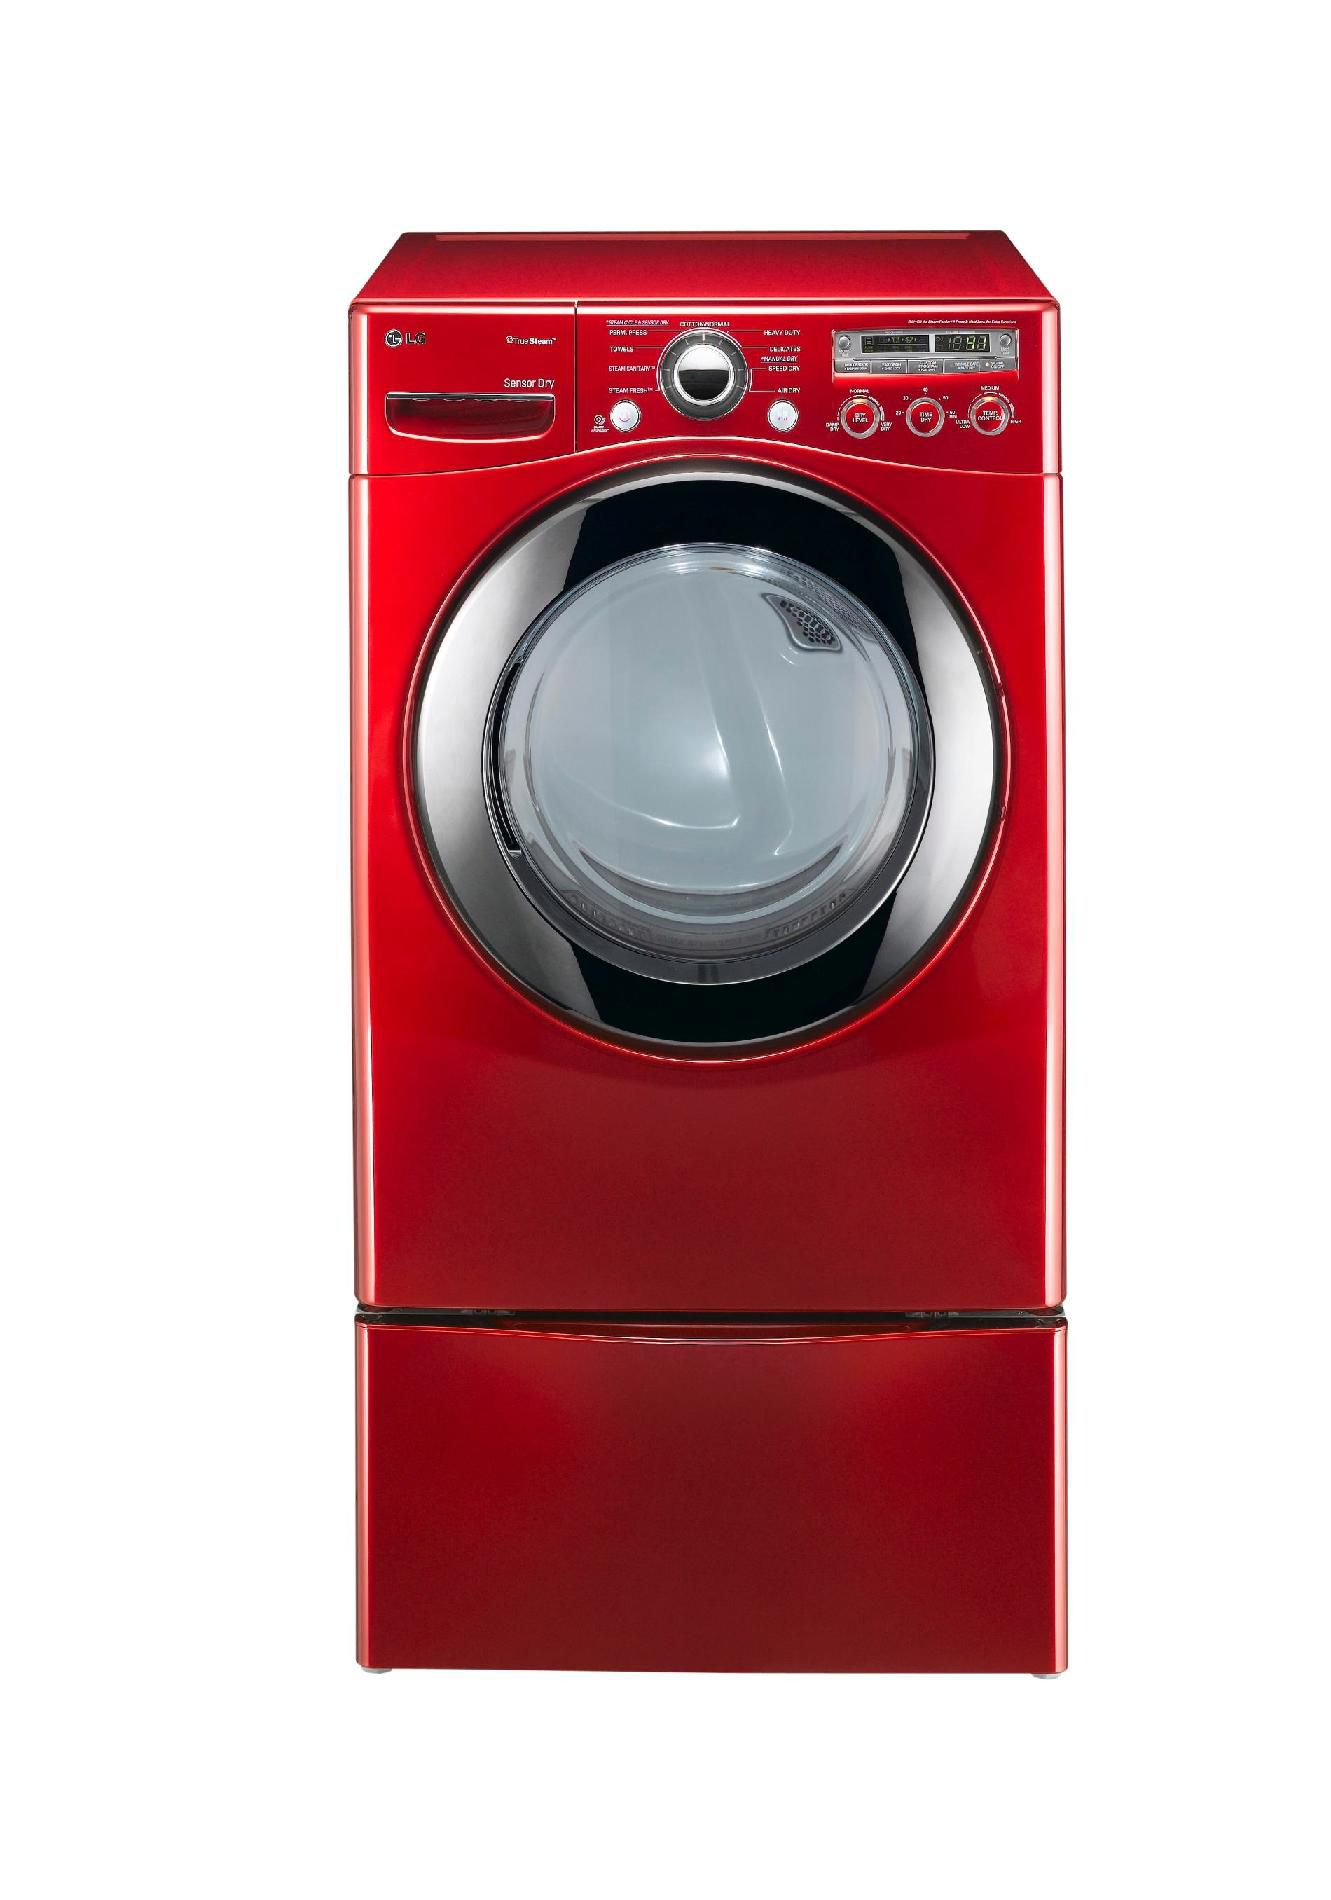 LG 7.3 cu. ft. Electric Dryer w/Steam Red